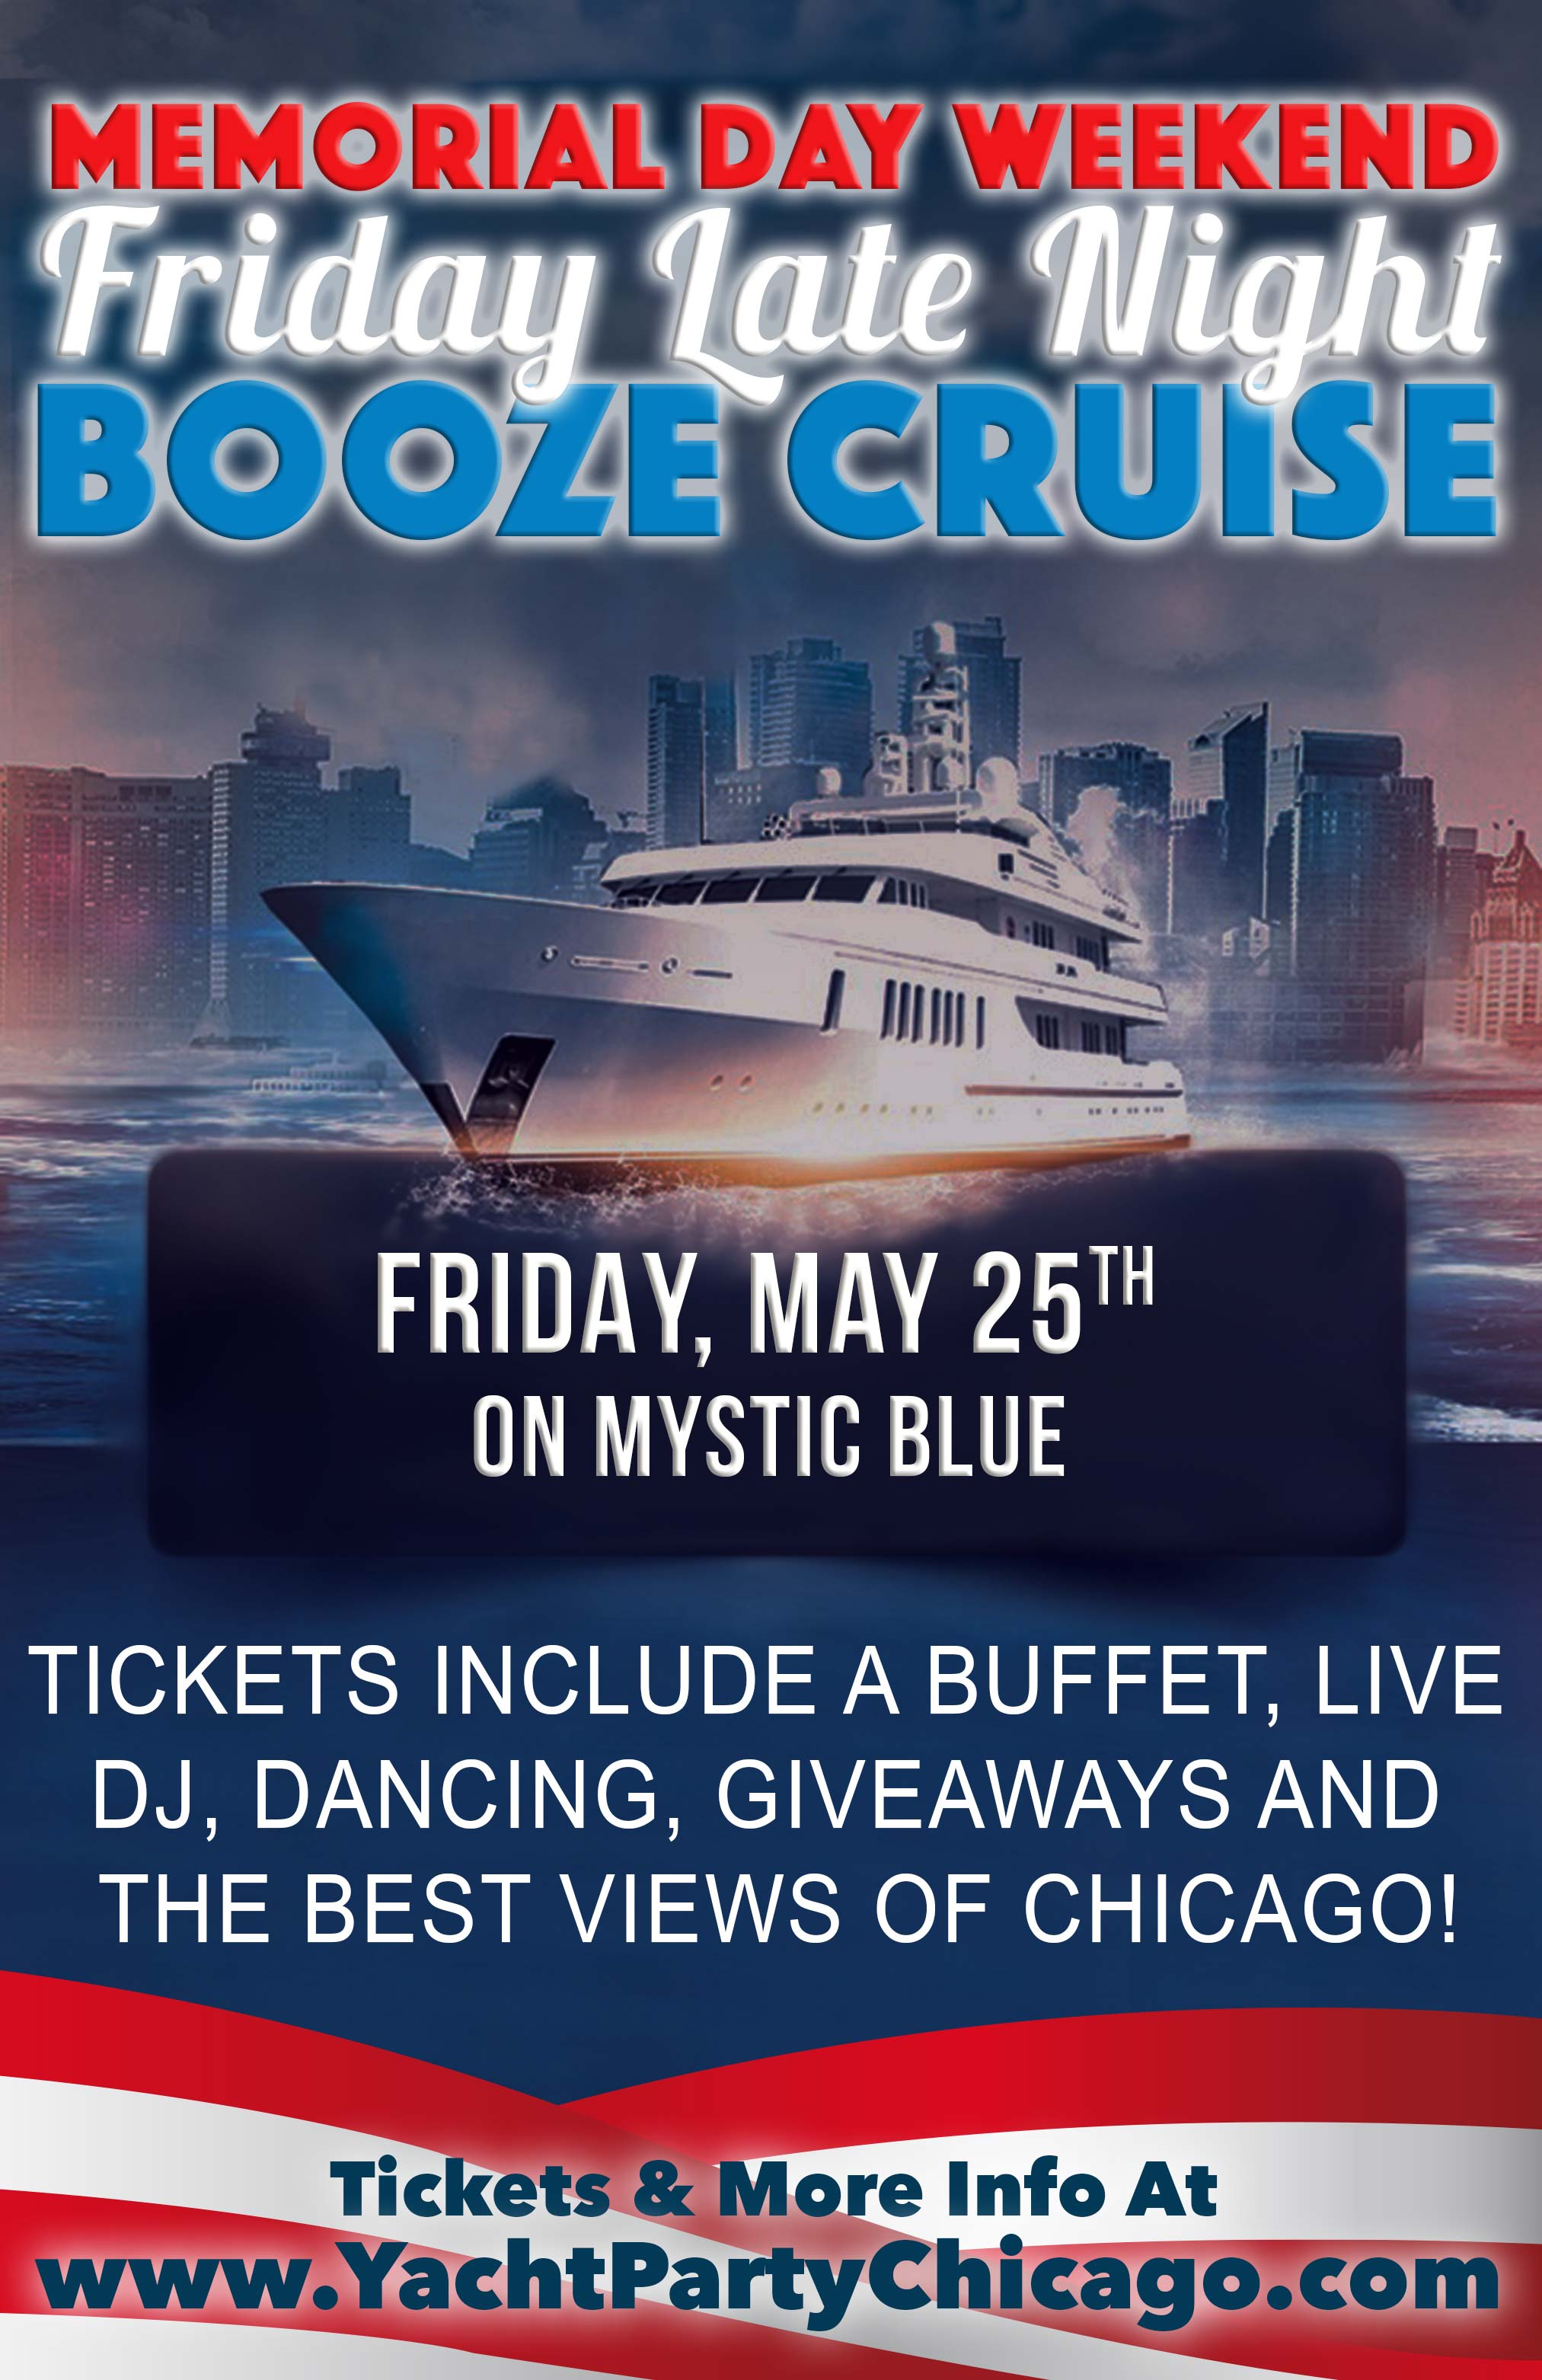 Memorial Day Weekend Friday Late Night Booze Cruise - Tickets include a Buffet, Live DJ, Dancing, and the best views of Chicago!